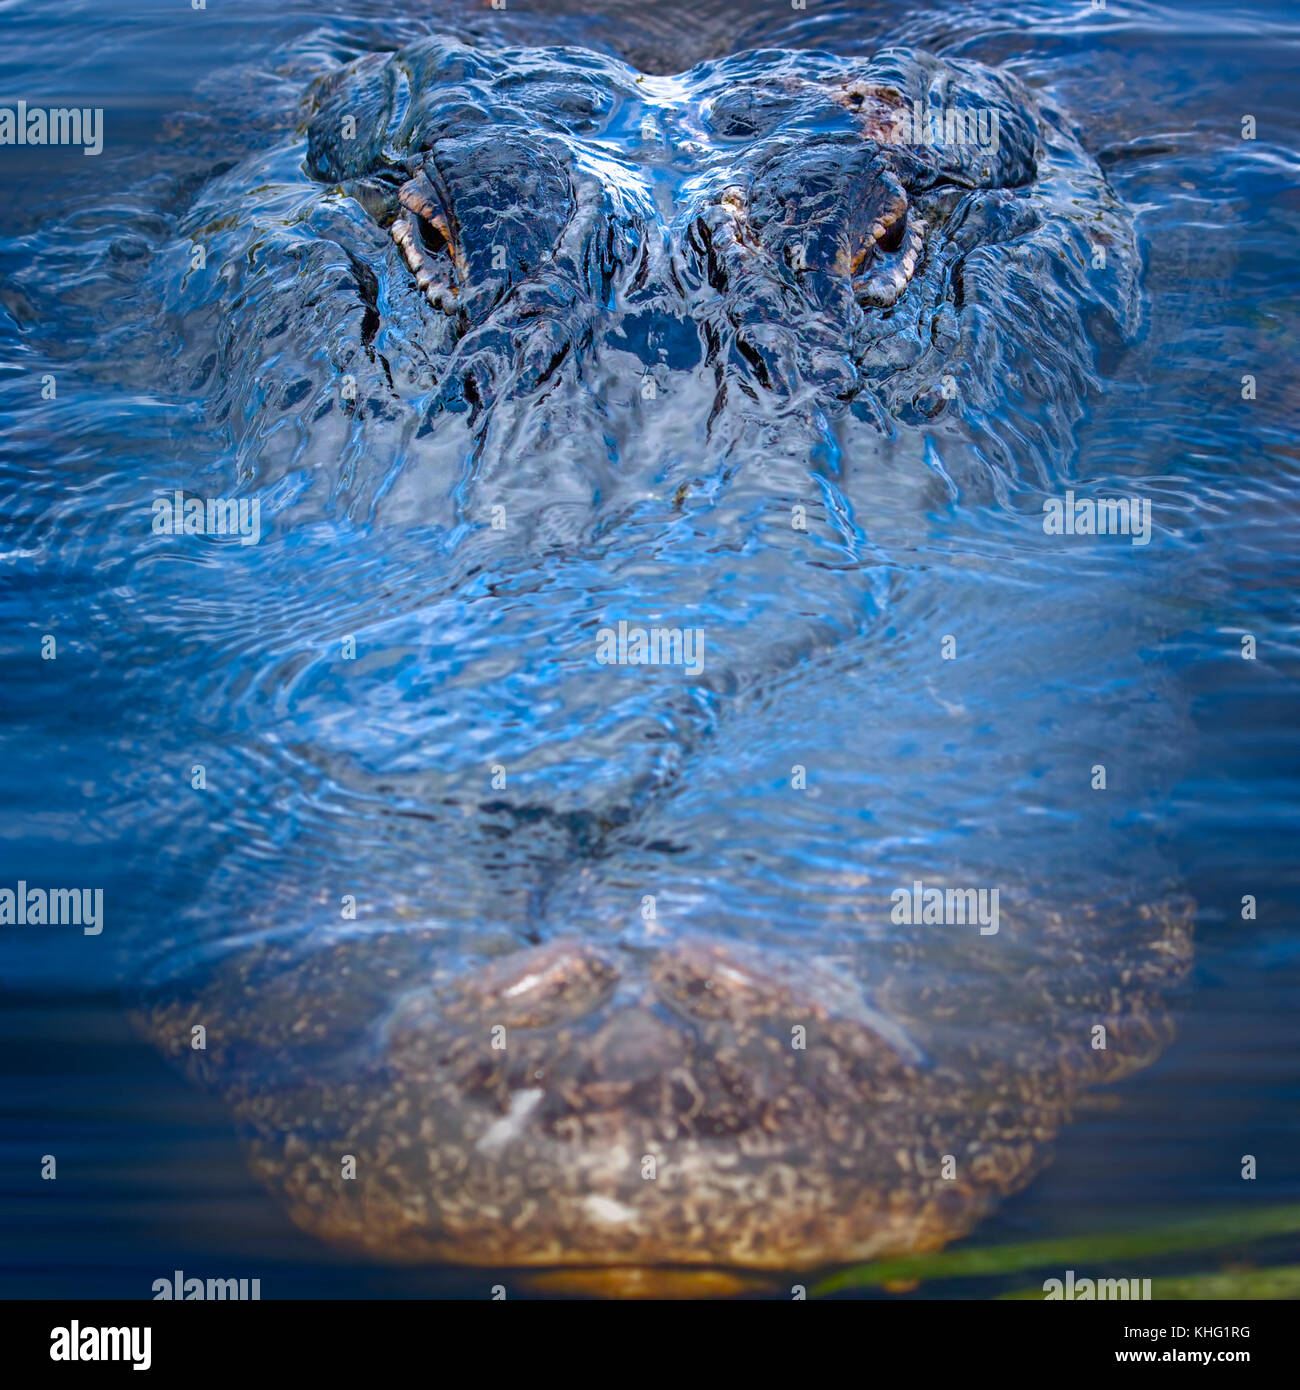 An enormous alligator swims in for a close up in the Florida Everglades. - Stock Image